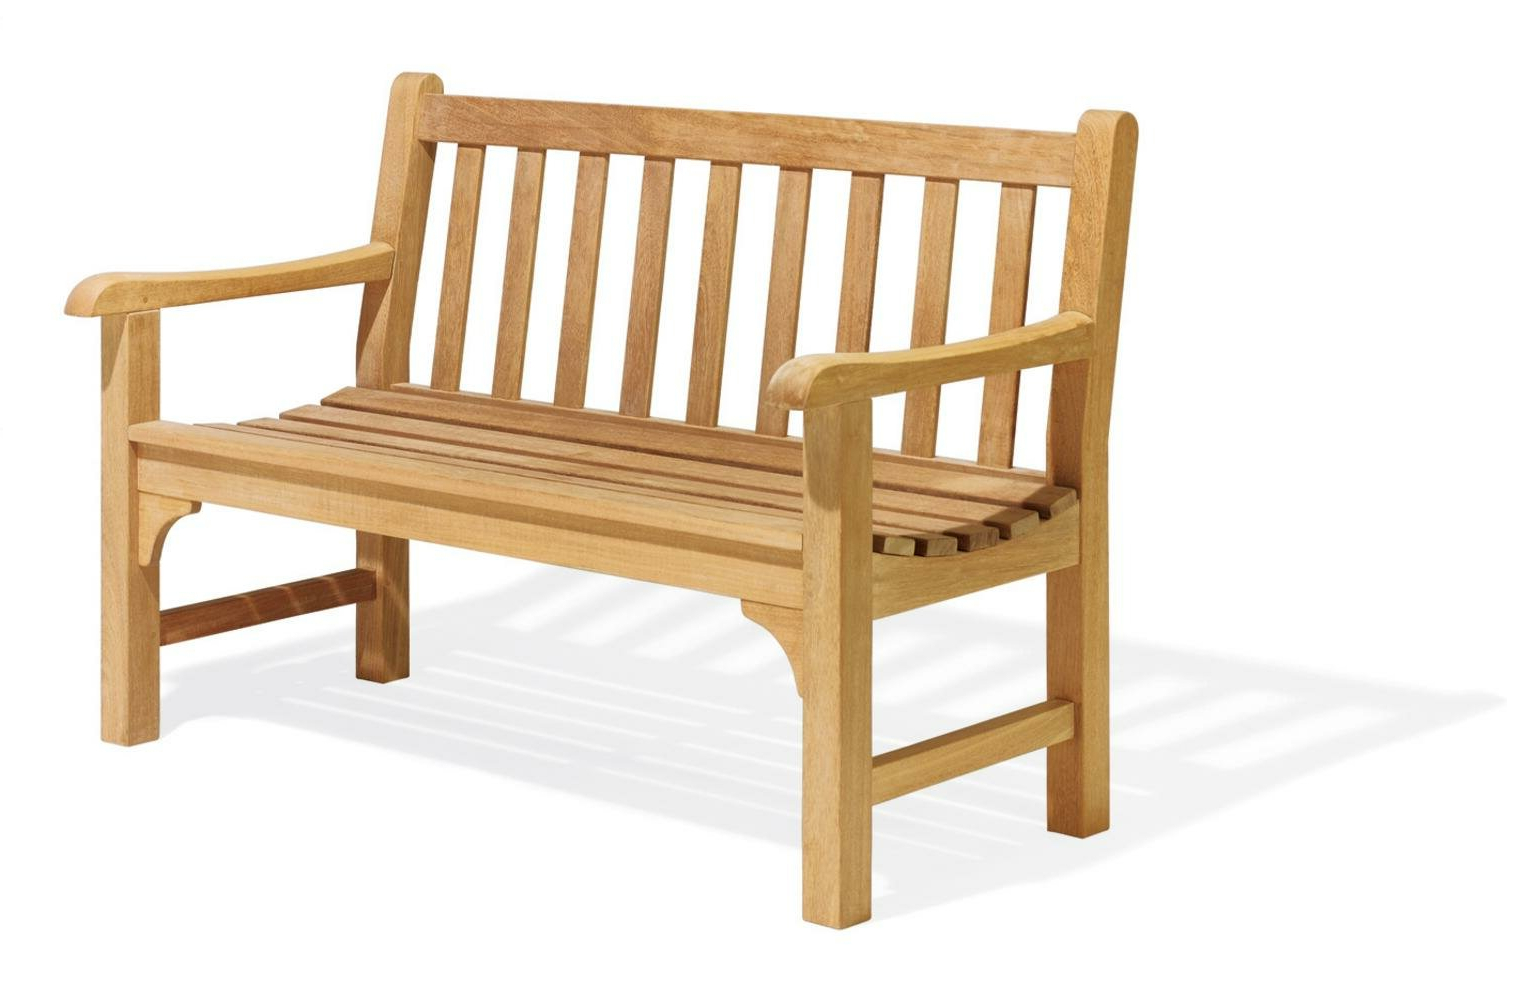 Most Current Lucille Timberland Wooden Garden Benches Intended For Rotteck Wooden Garden Bench (View 5 of 30)